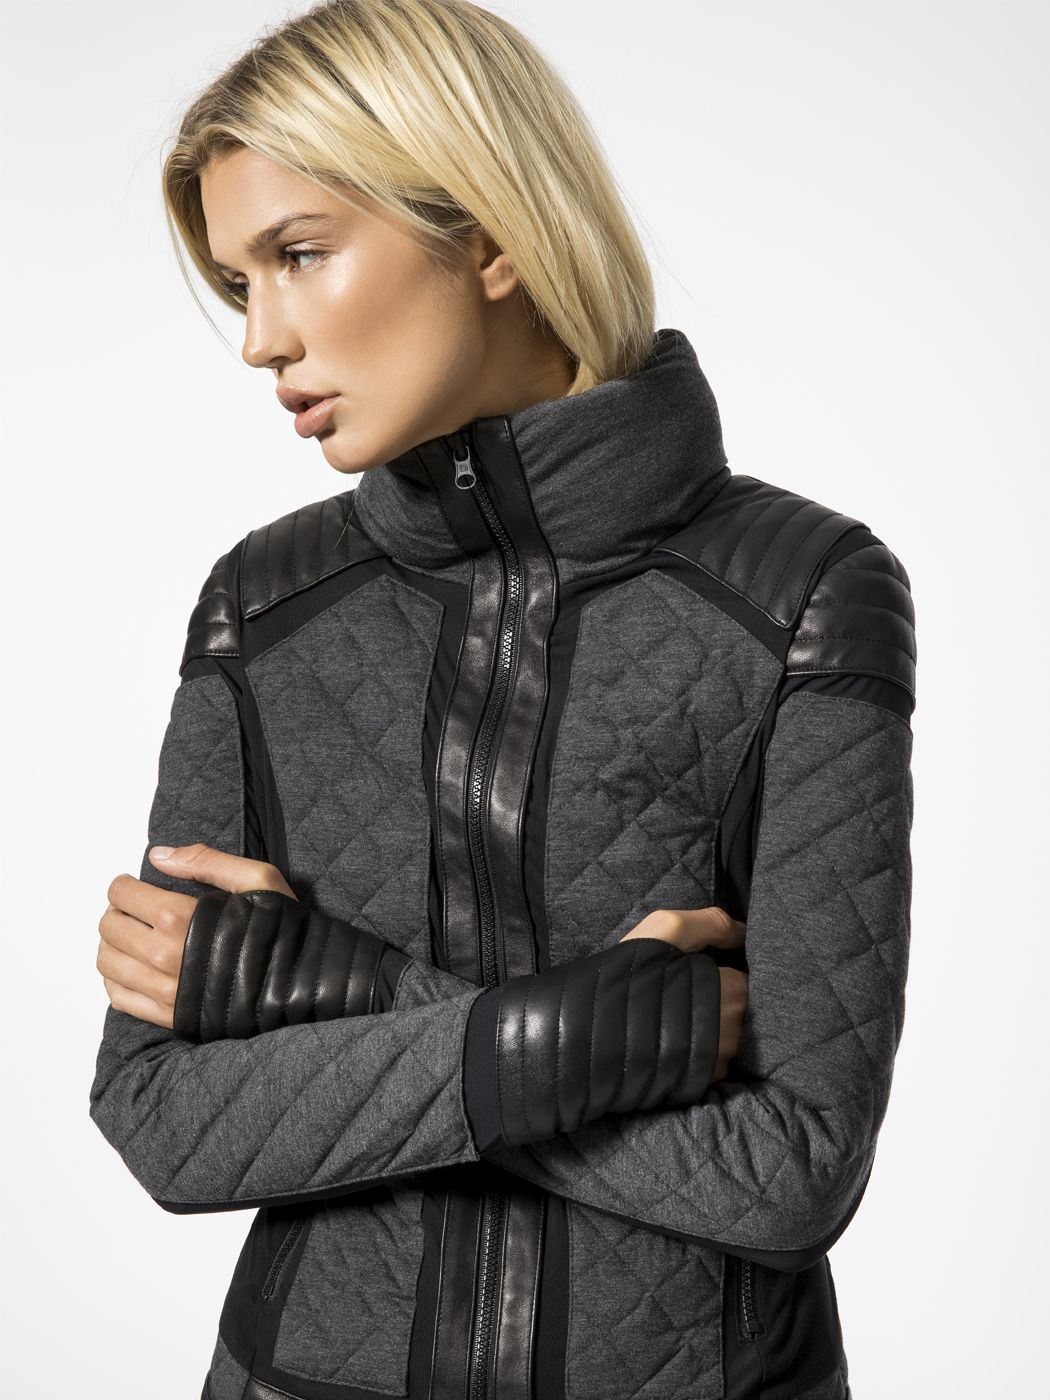 Mesh Inset Moto Puffer Jacket In Charcoal Heather By Blanc Noir From Carbon38 Puffer Fashion Women S Puffer [ 1400 x 1050 Pixel ]